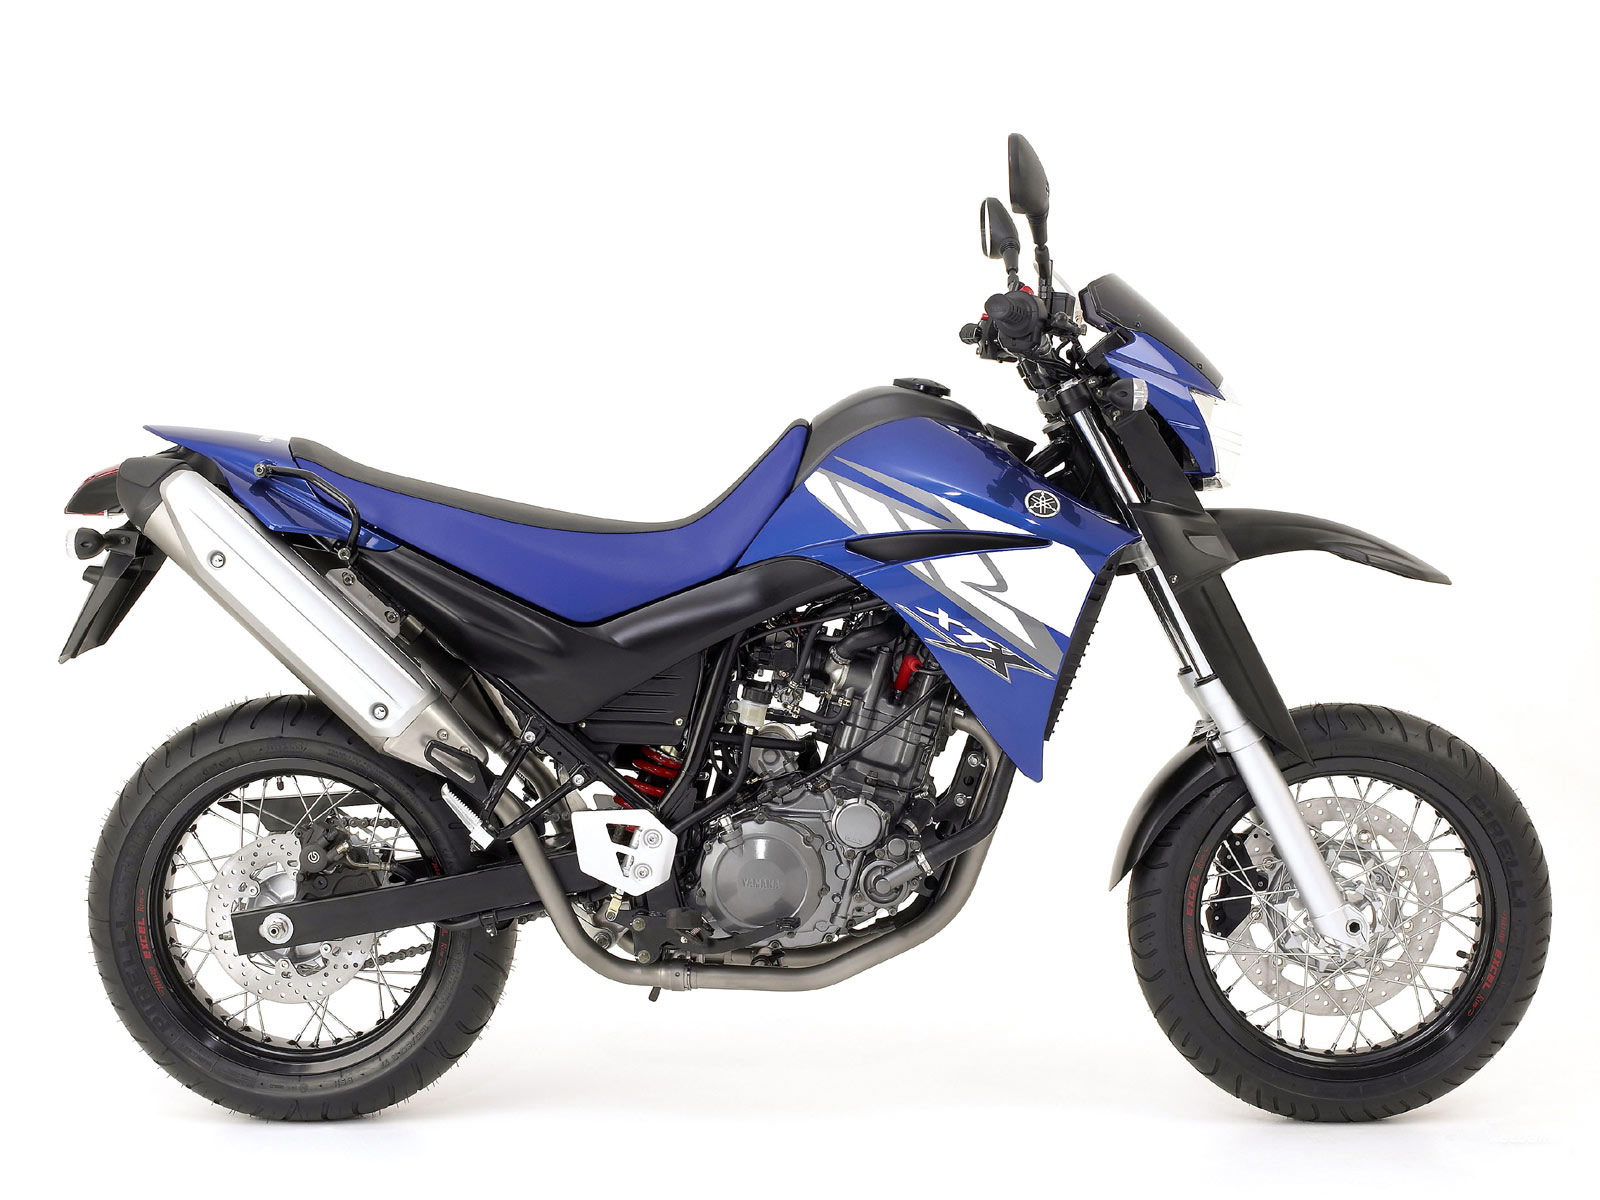 2005 YAMAHA XT660X Motorcycle pictures